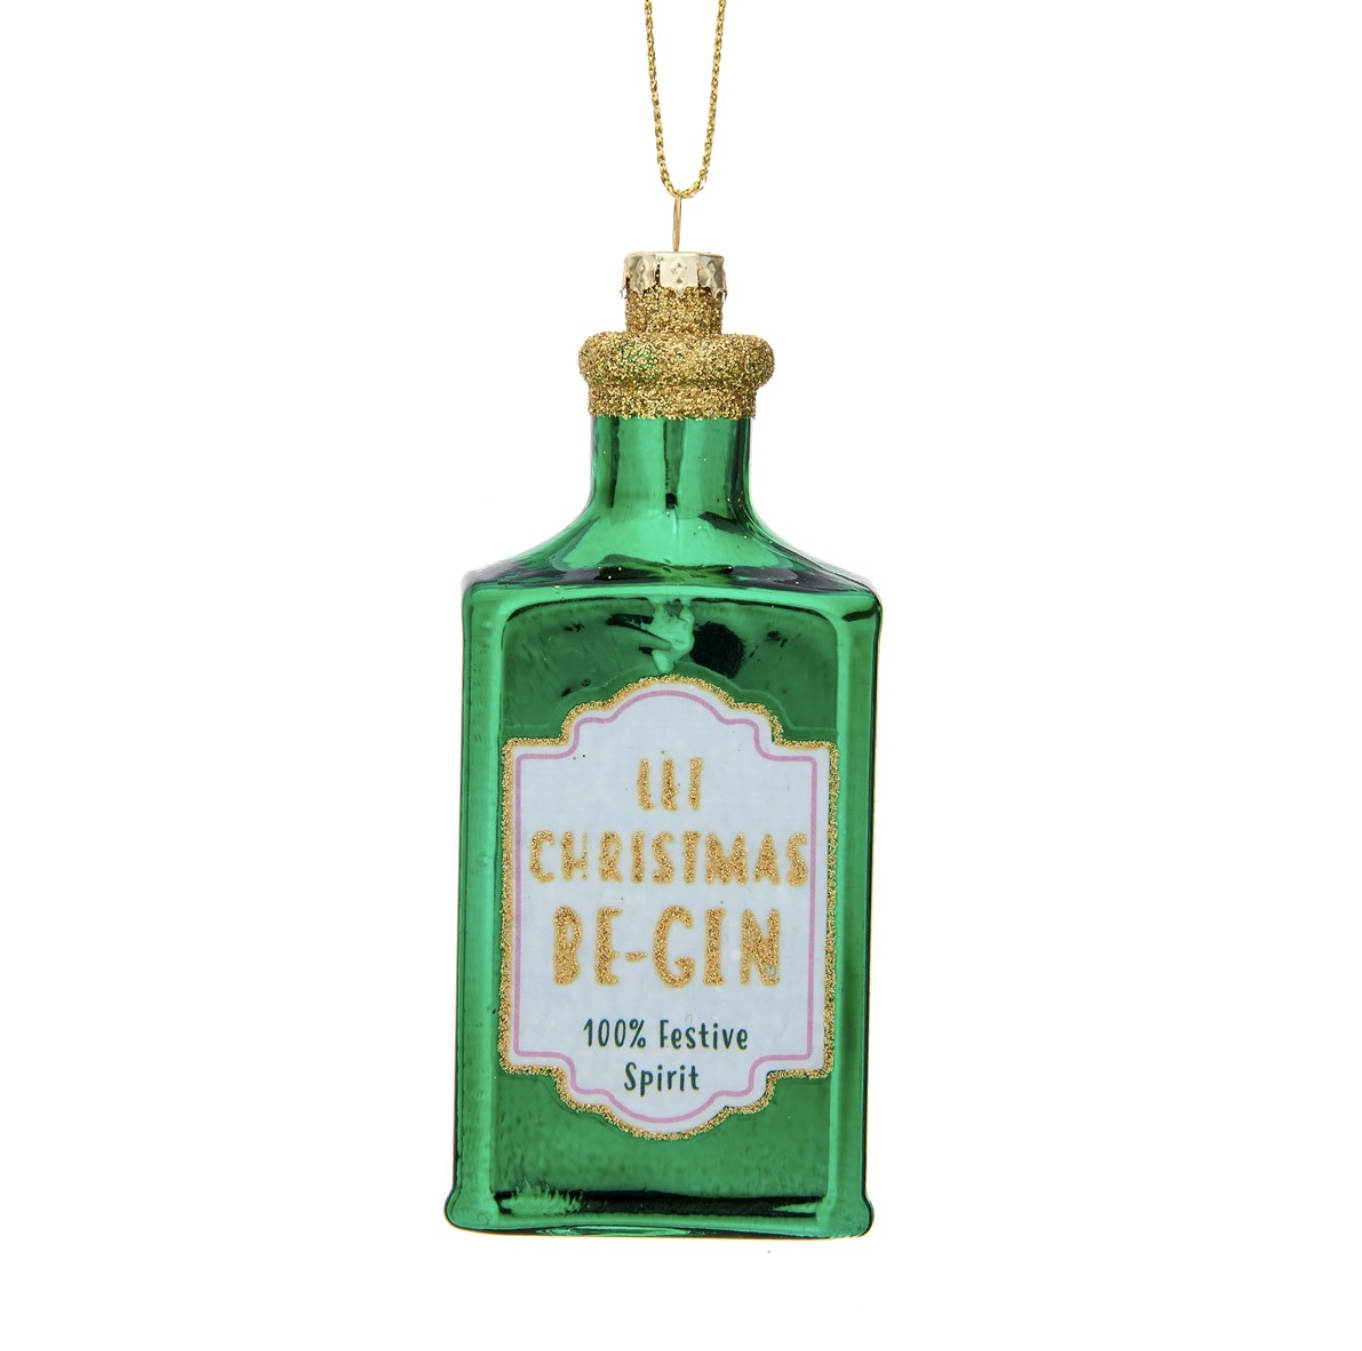 Let Christmas Be Gin Bauble